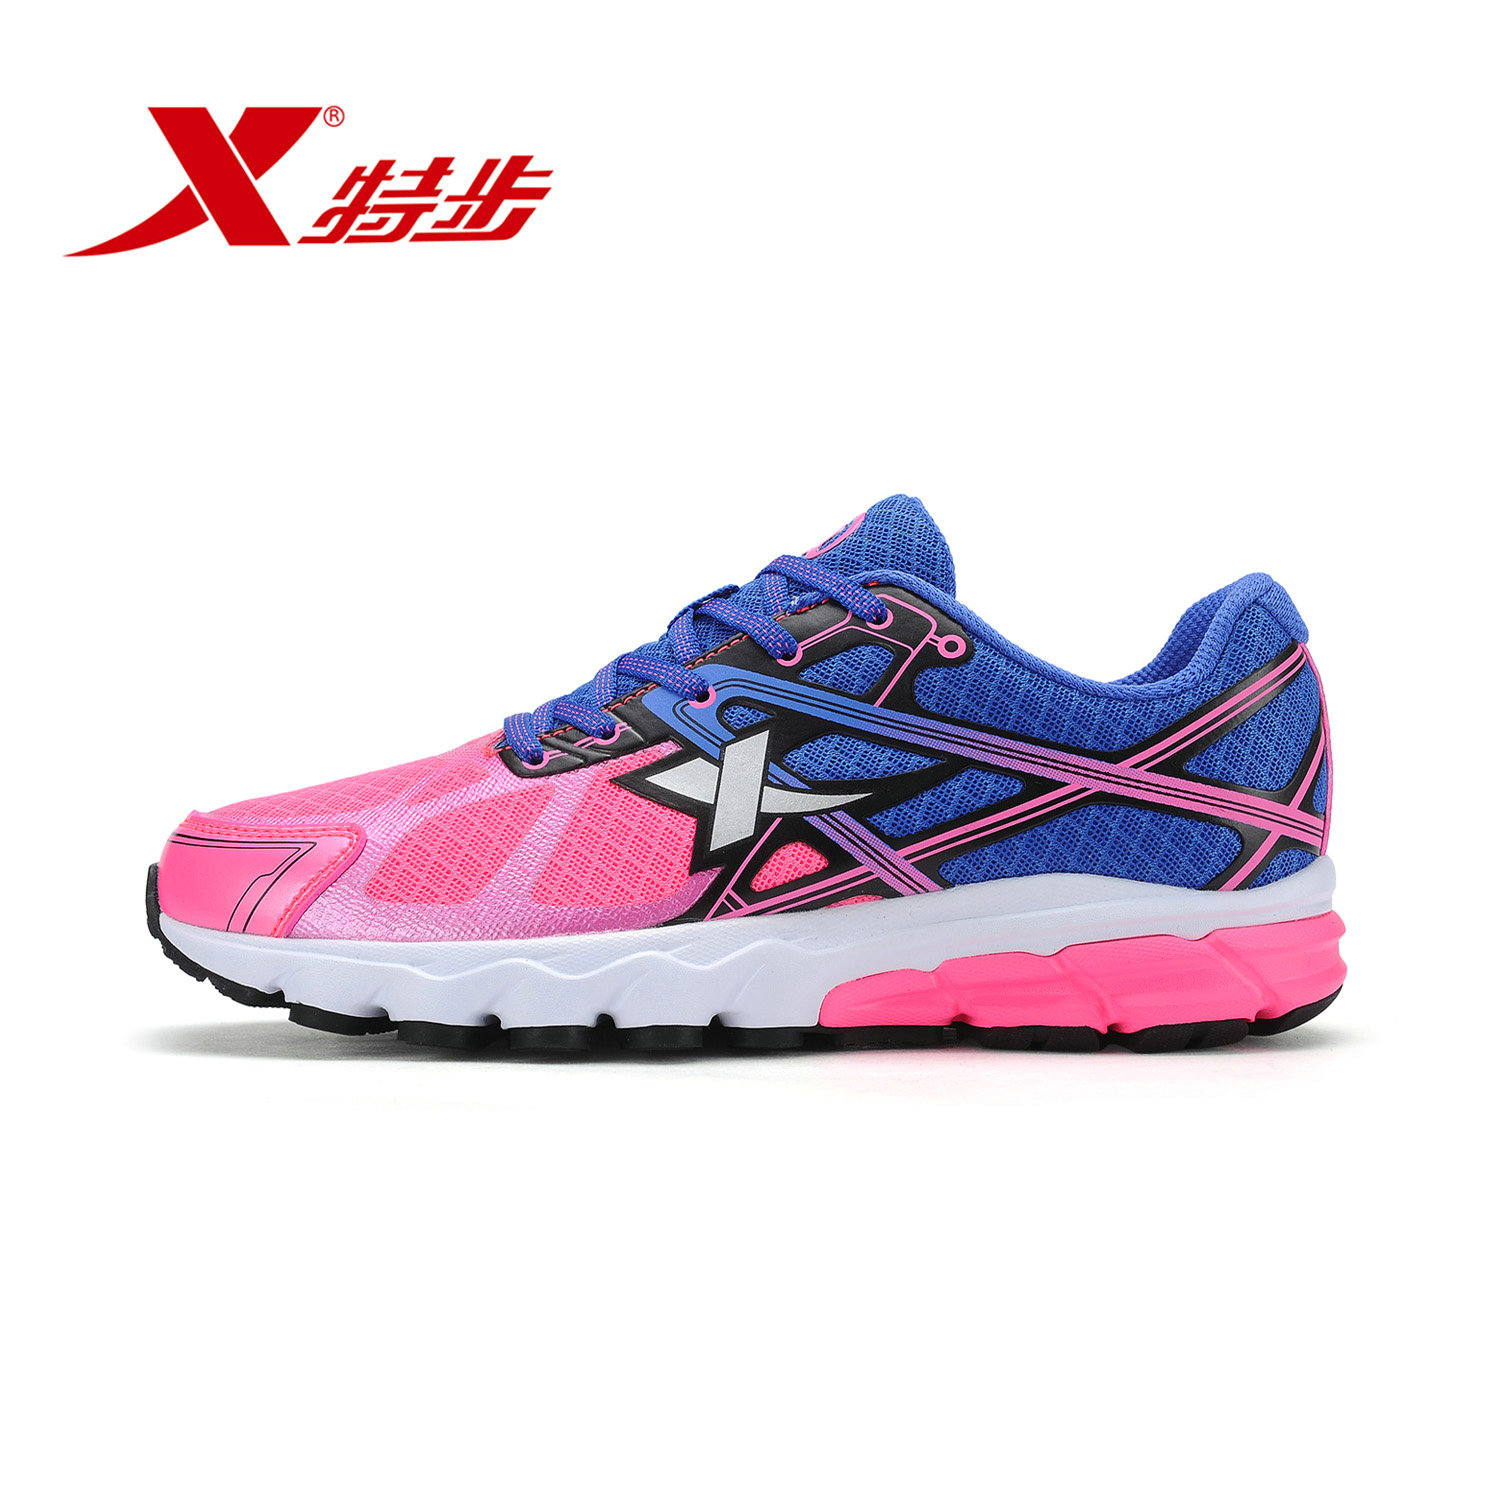 Xtep shoes sneakers running shoes women shoes 2016 spring and summer new women casual shoes lightweight breathable wear and shock absorption